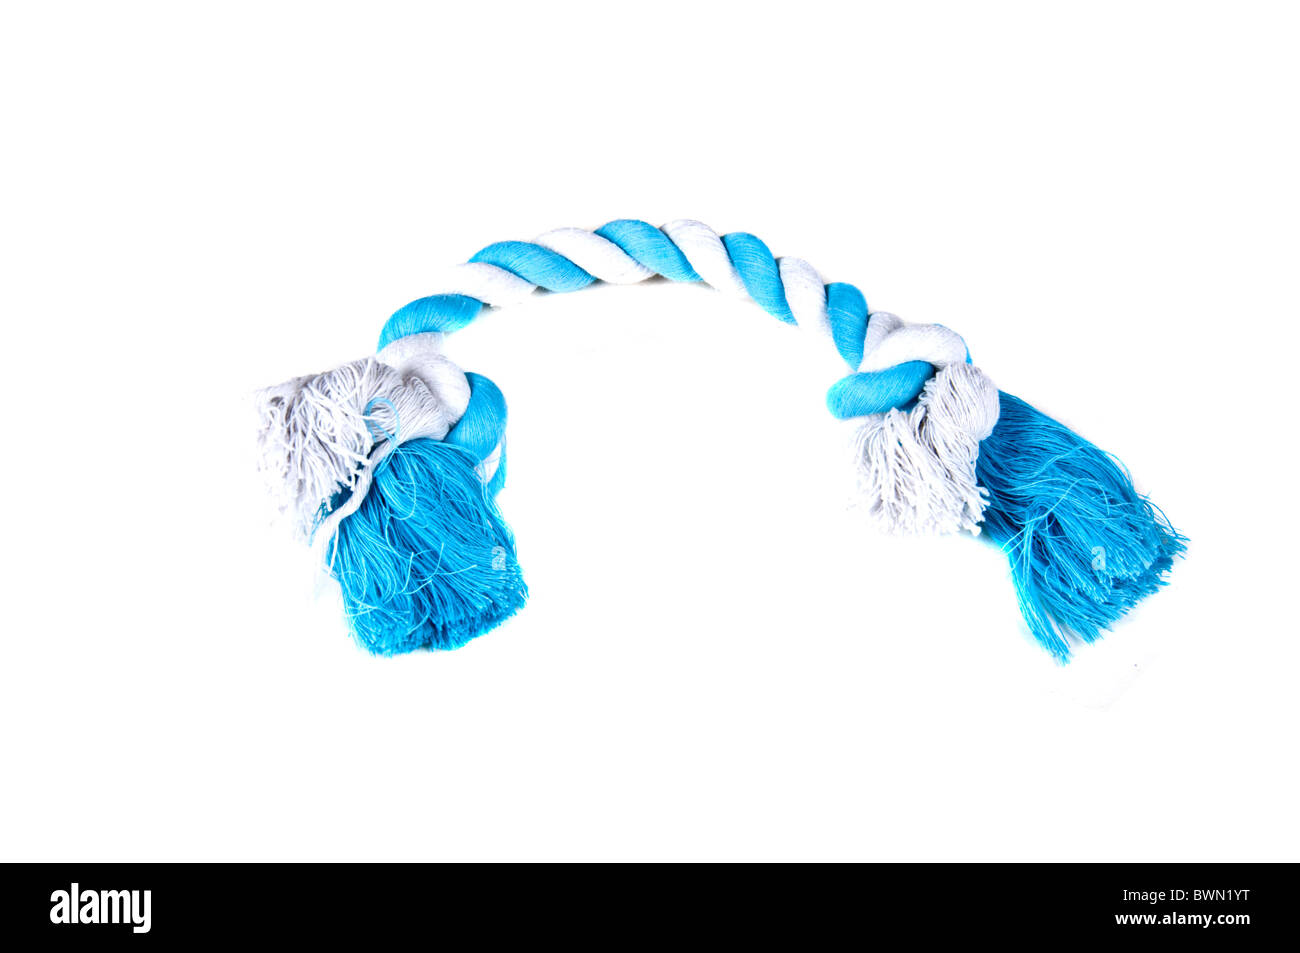 White and blue rope chew toy for dogs and puppies, isolated on a white background - Stock Image